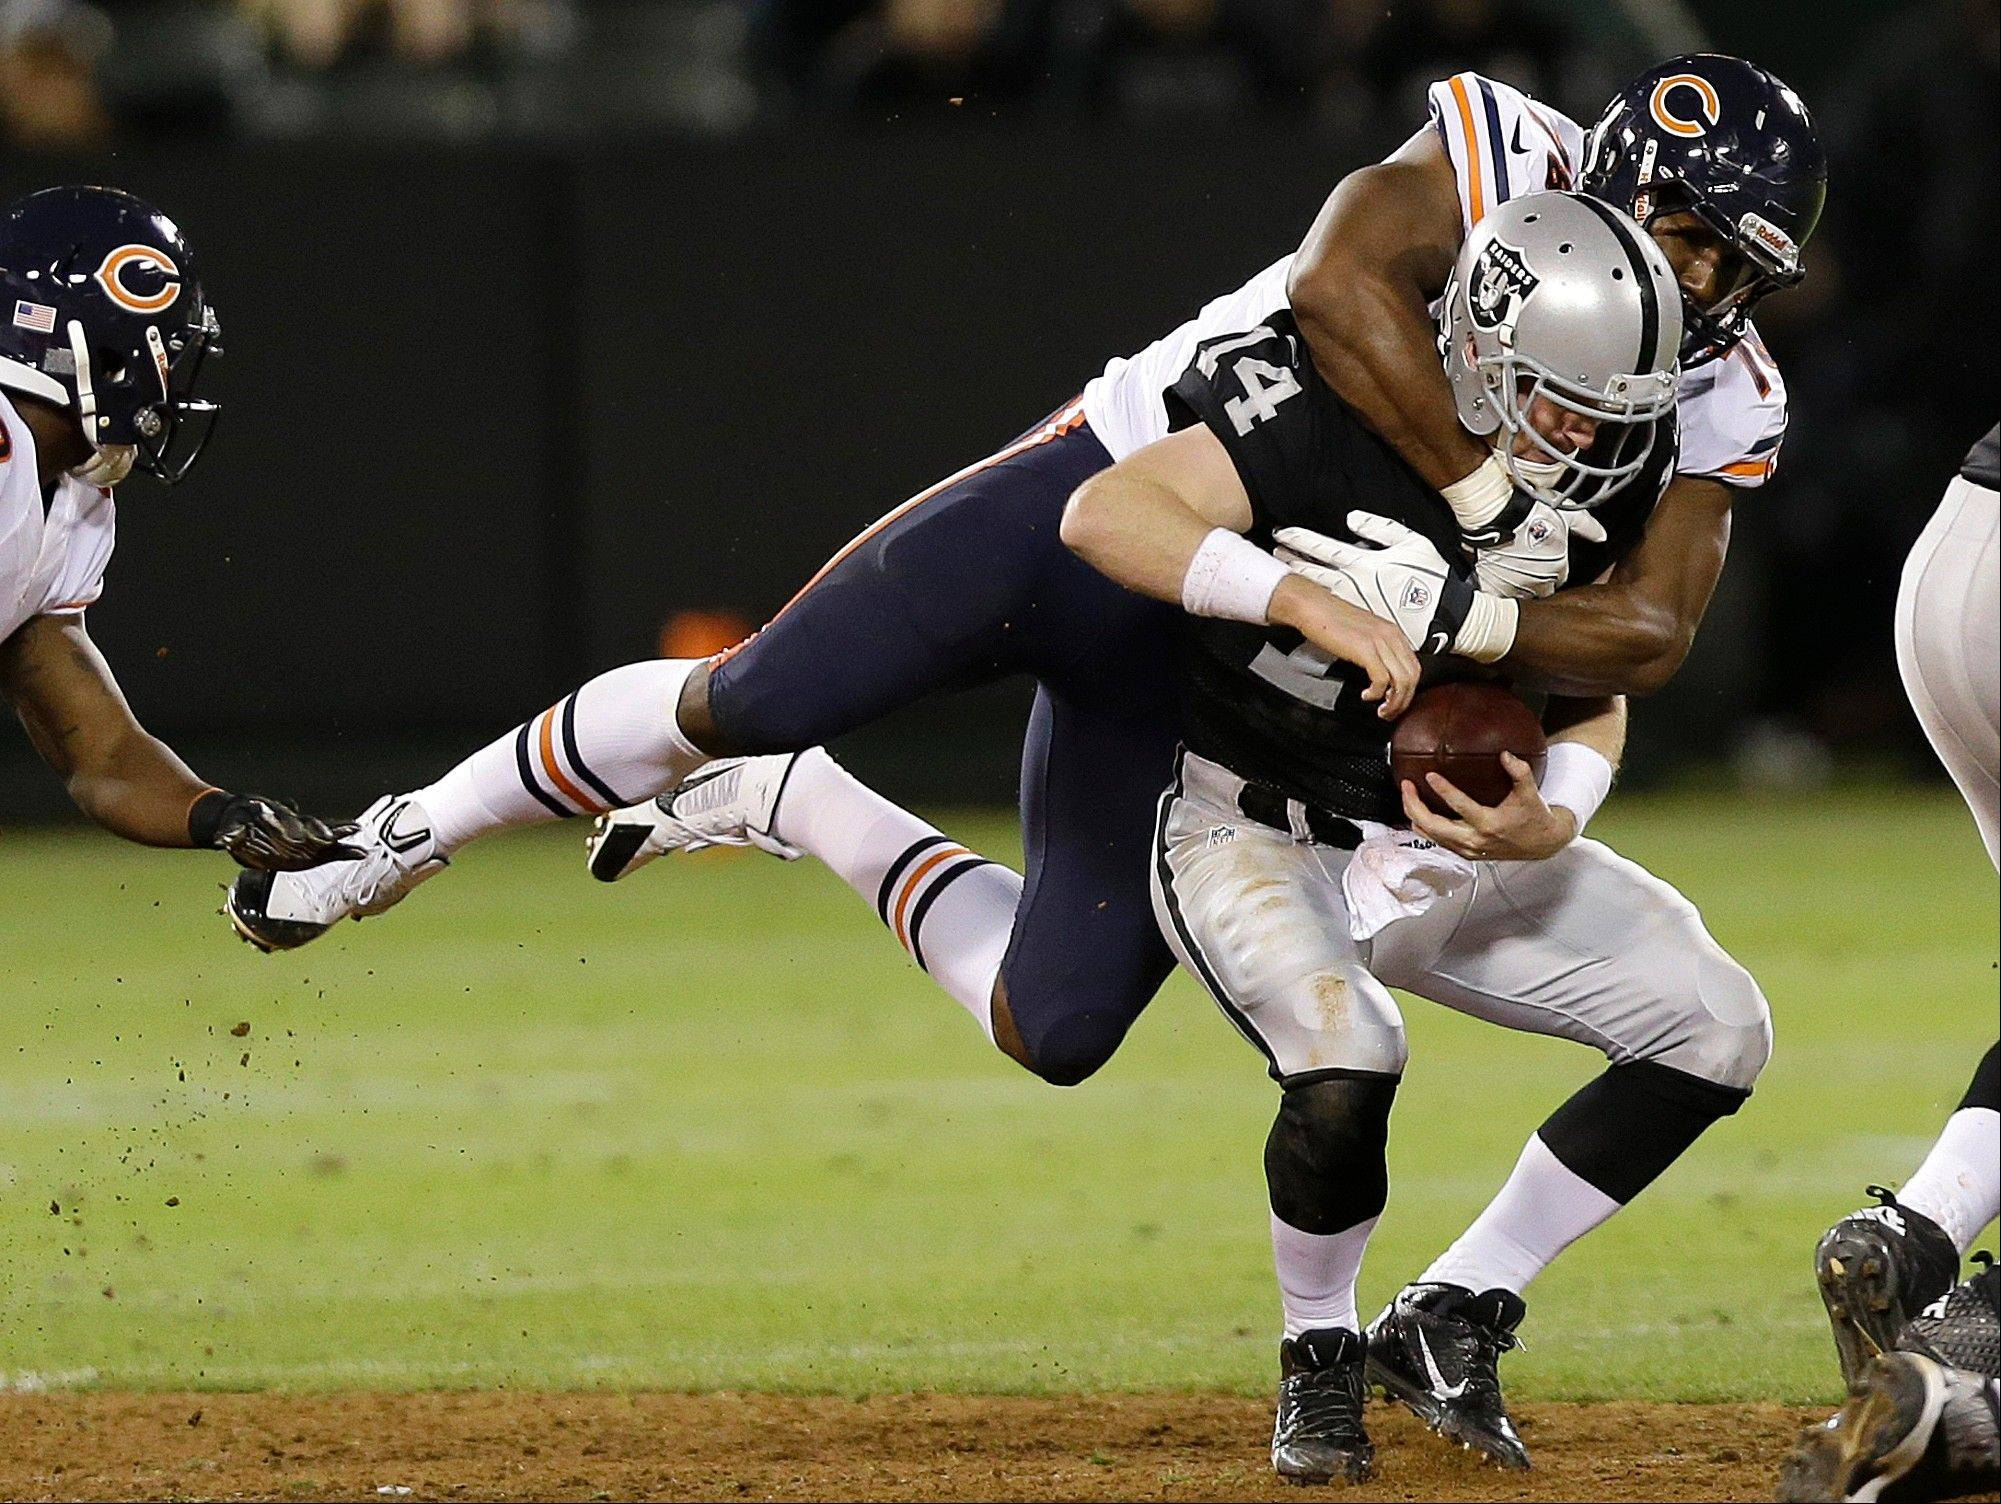 Chicago Bears defensive end Cornelius Washington sacks Oakland Raiders quarterback Matthew McGloin (14) during the fourth quarter.